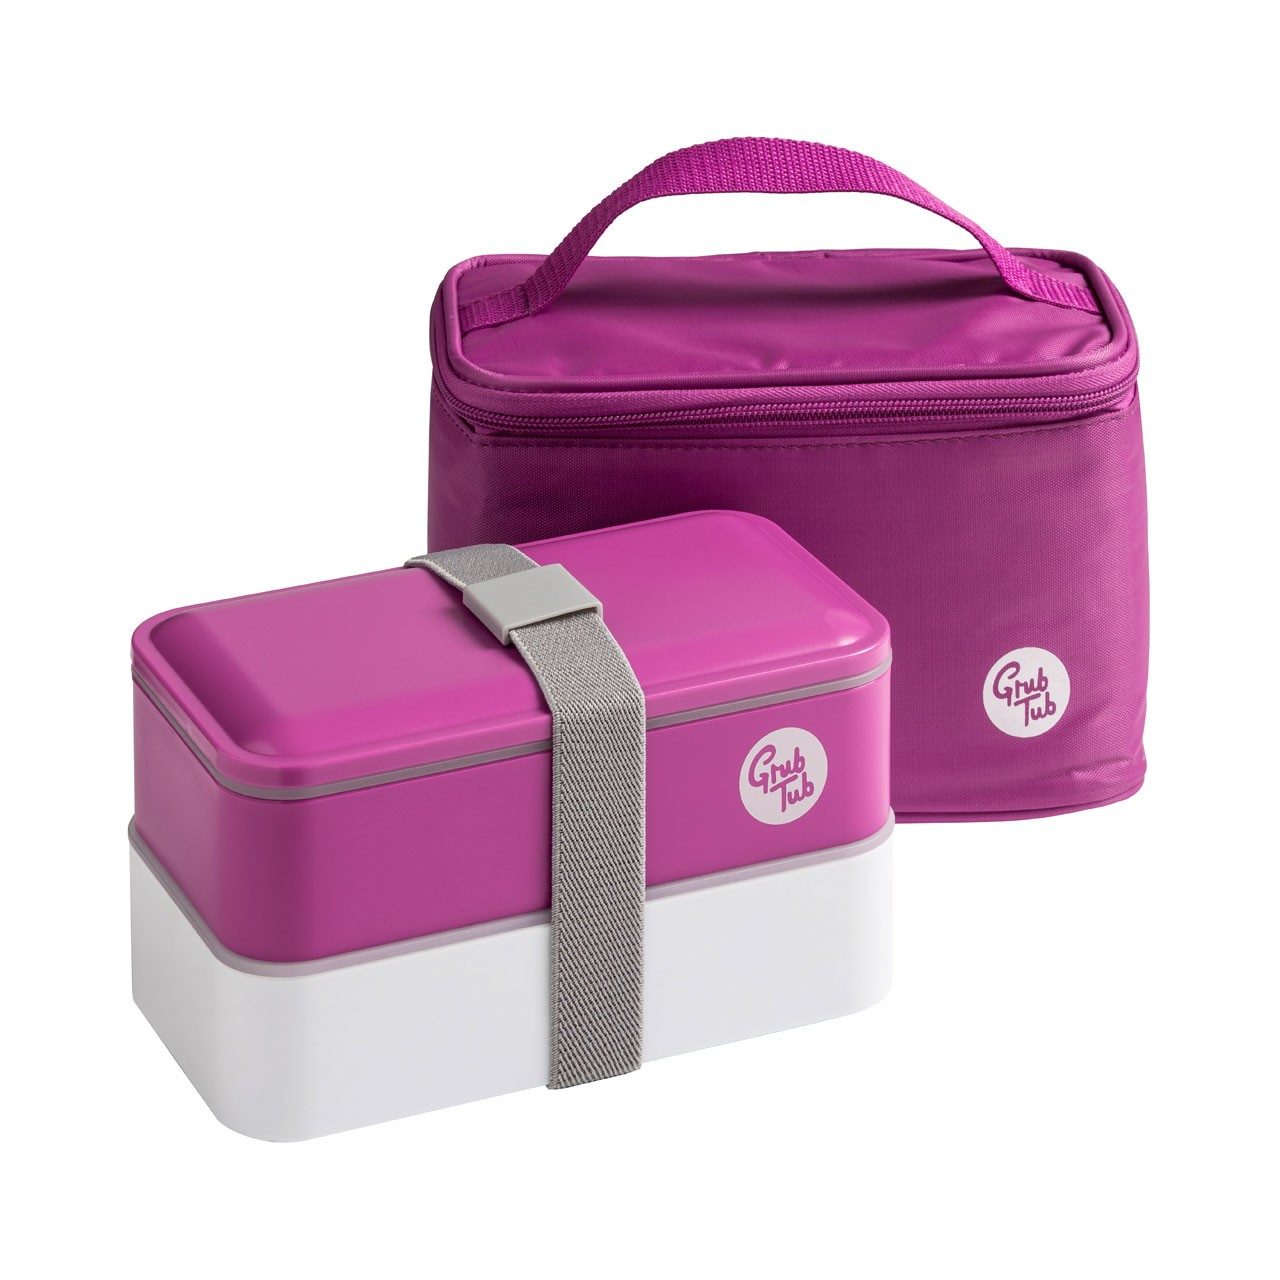 Grub Tub Lunch Box with 2 Containers/Cool Bag/Cutlery - Purple